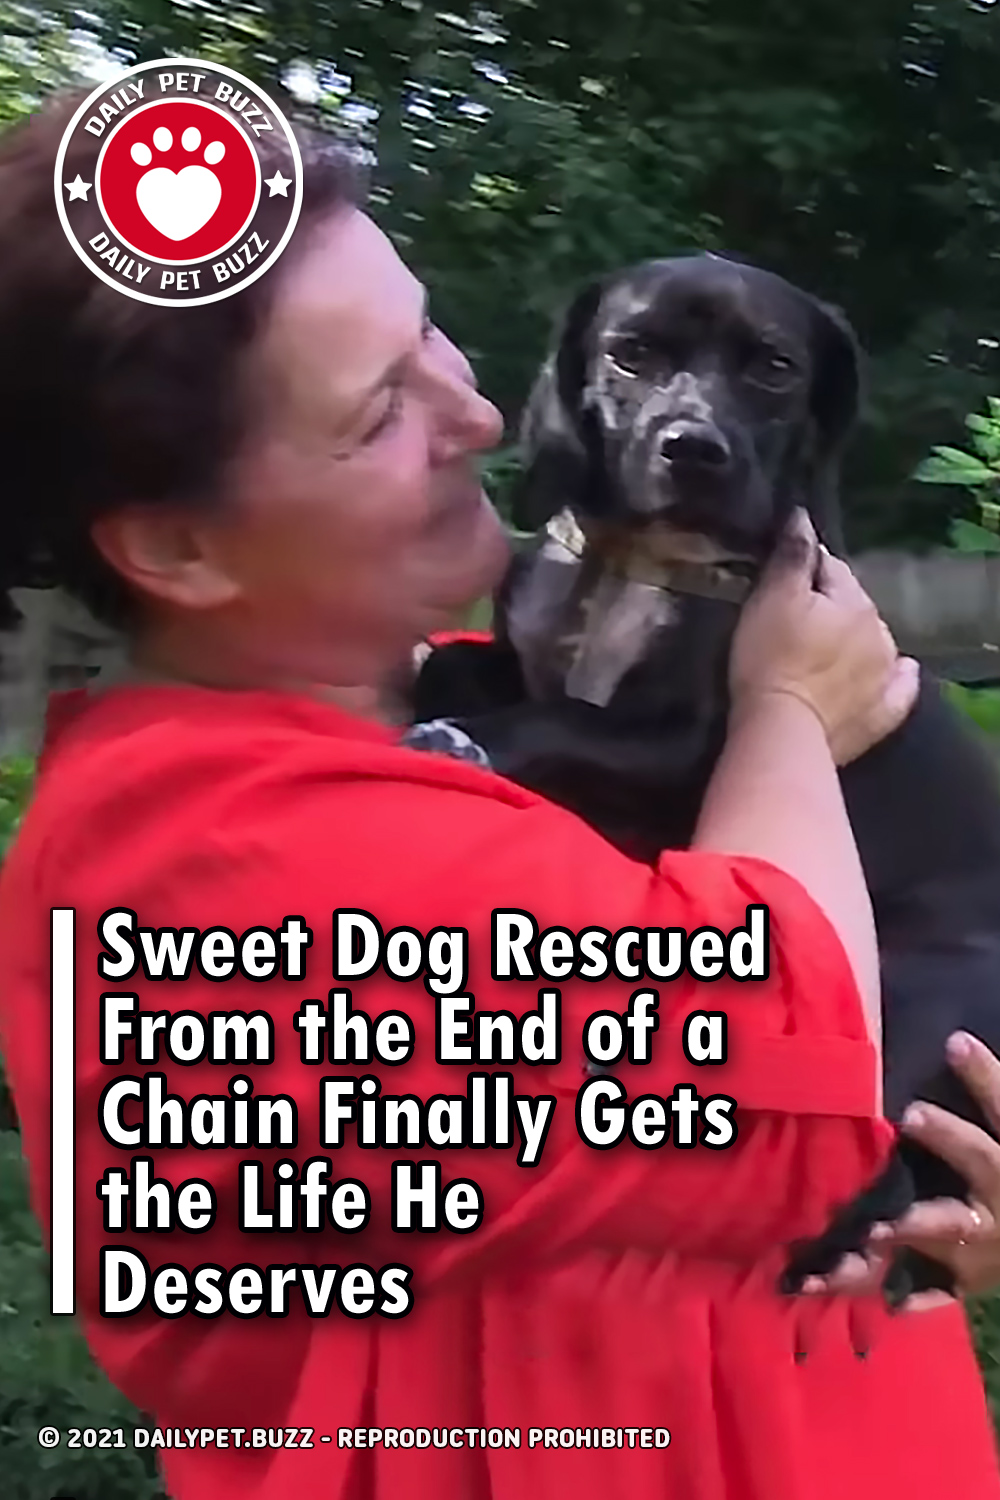 Sweet Dog Rescued From the End of a Chain Finally Gets the Life He Deserves